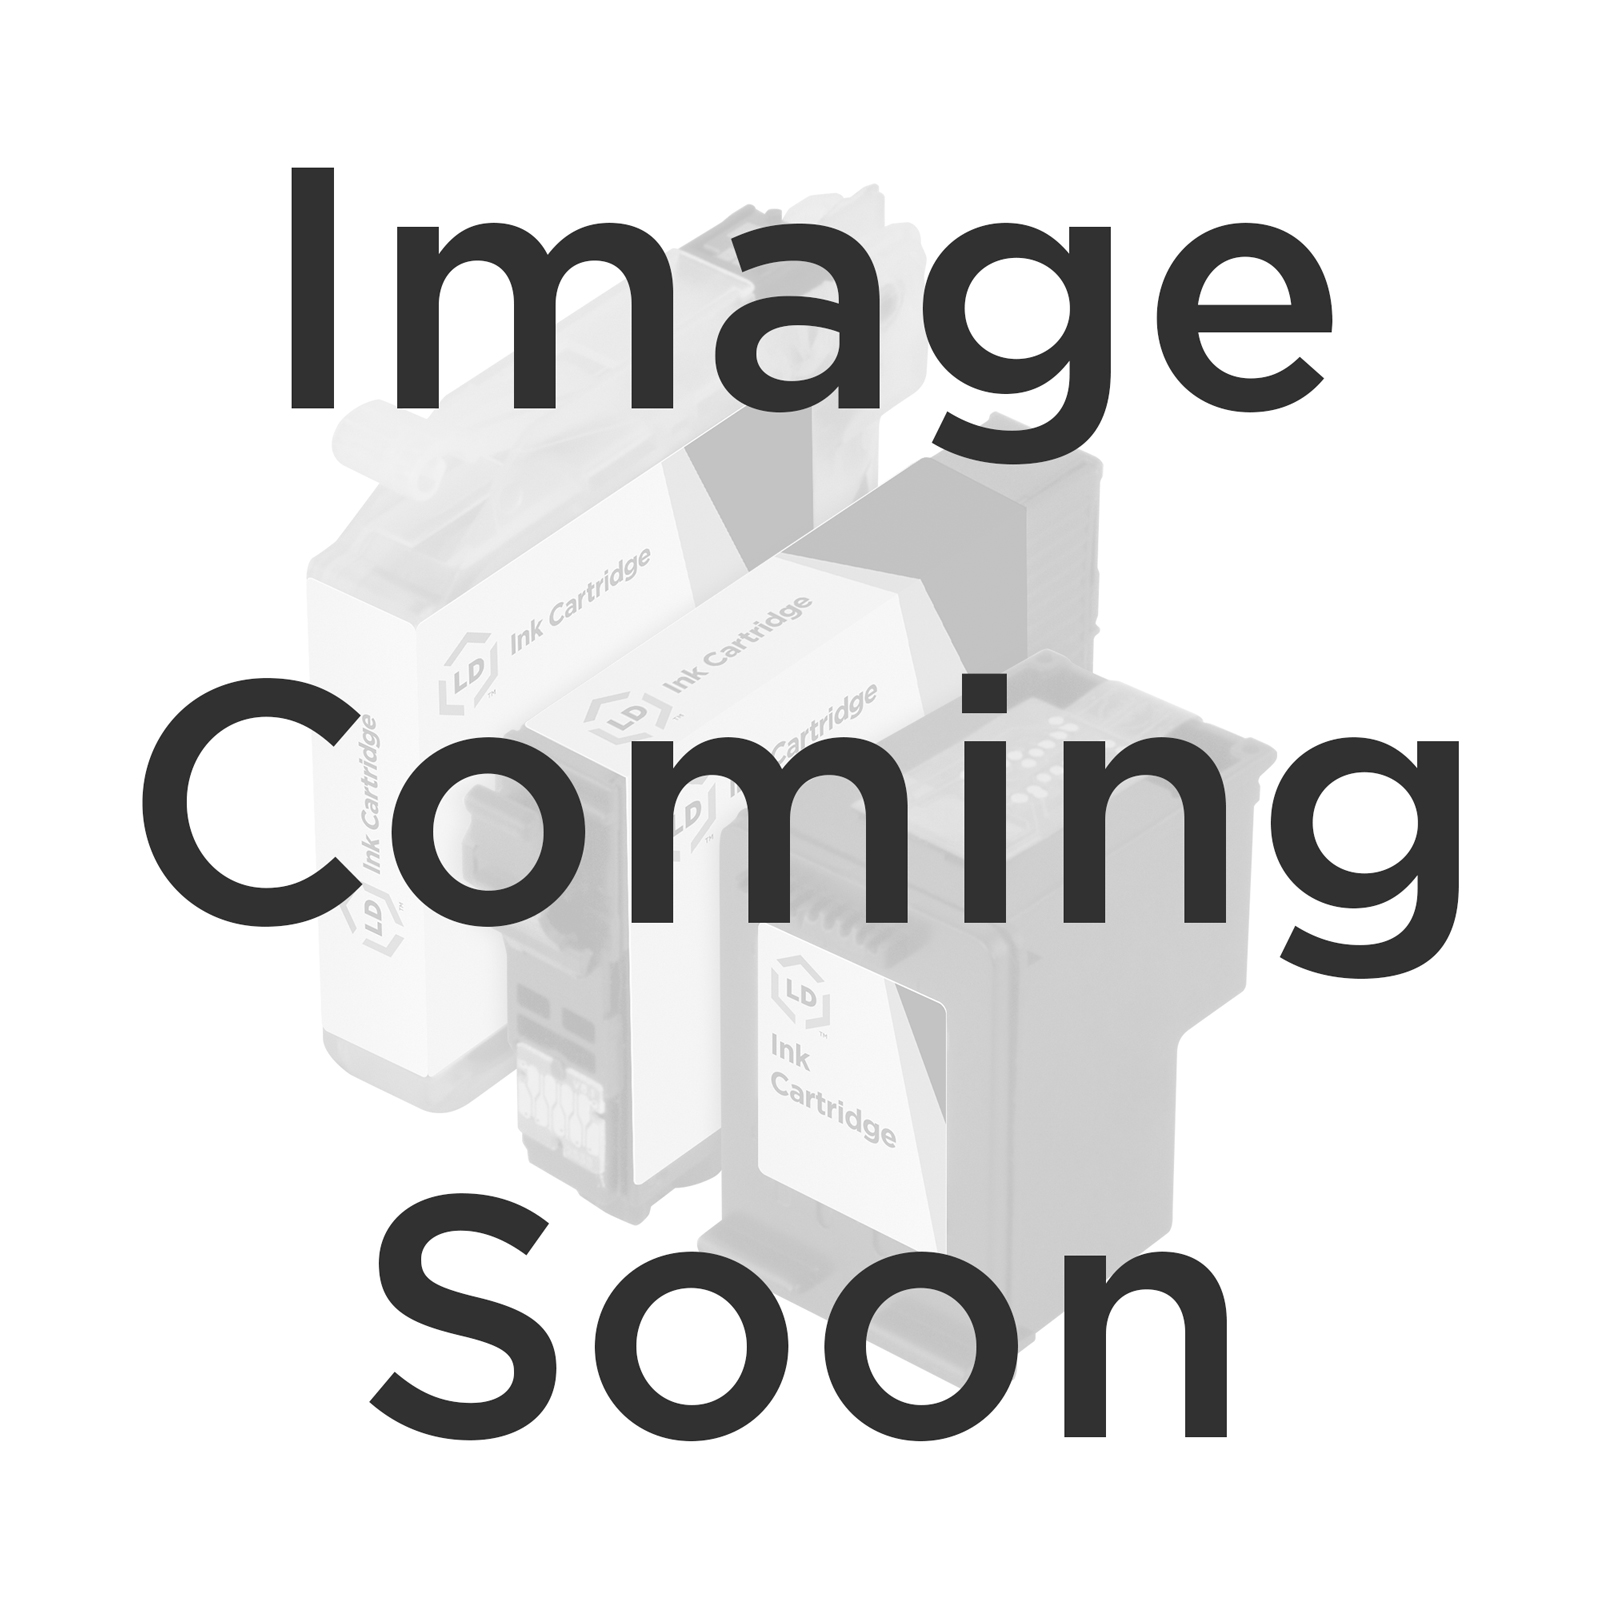 Shell Math Games: Skill-Based Practice for Second Grade Education Printed Book for Mathematics by Ted H. Hull, Ruth Harbin Miles, Don S. Balka